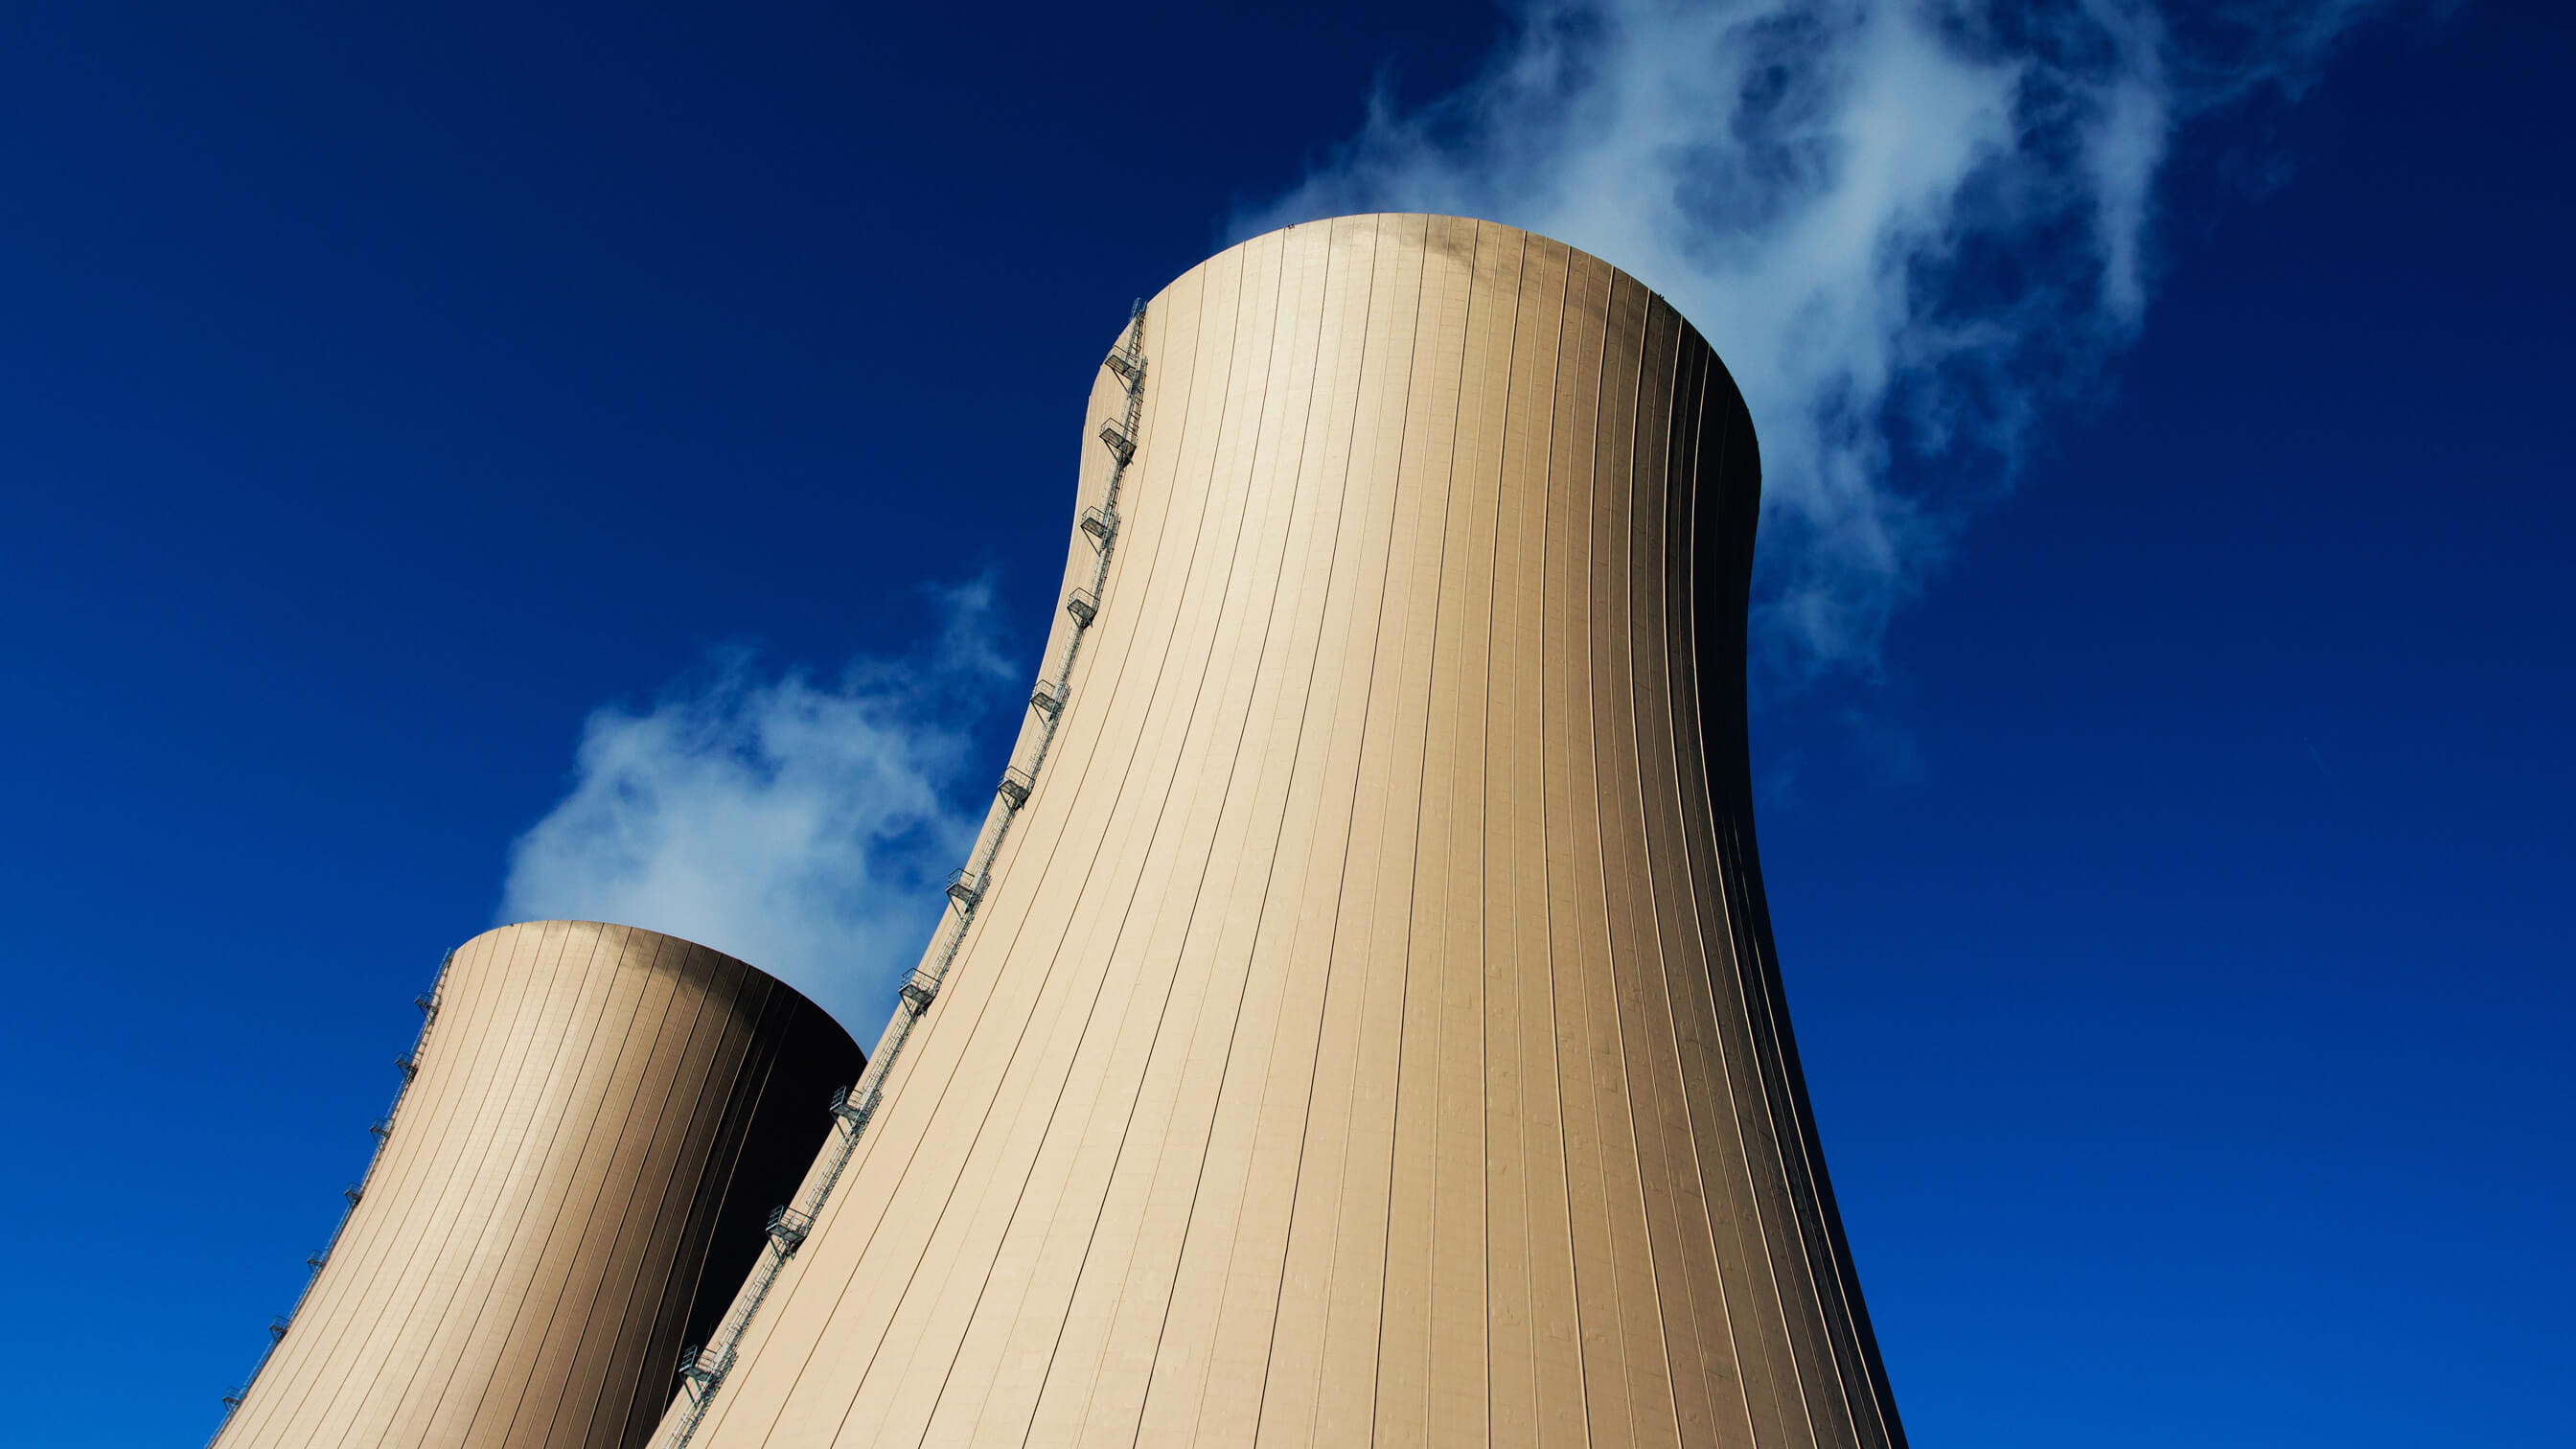 Two cooling towers at a nuclear power plant